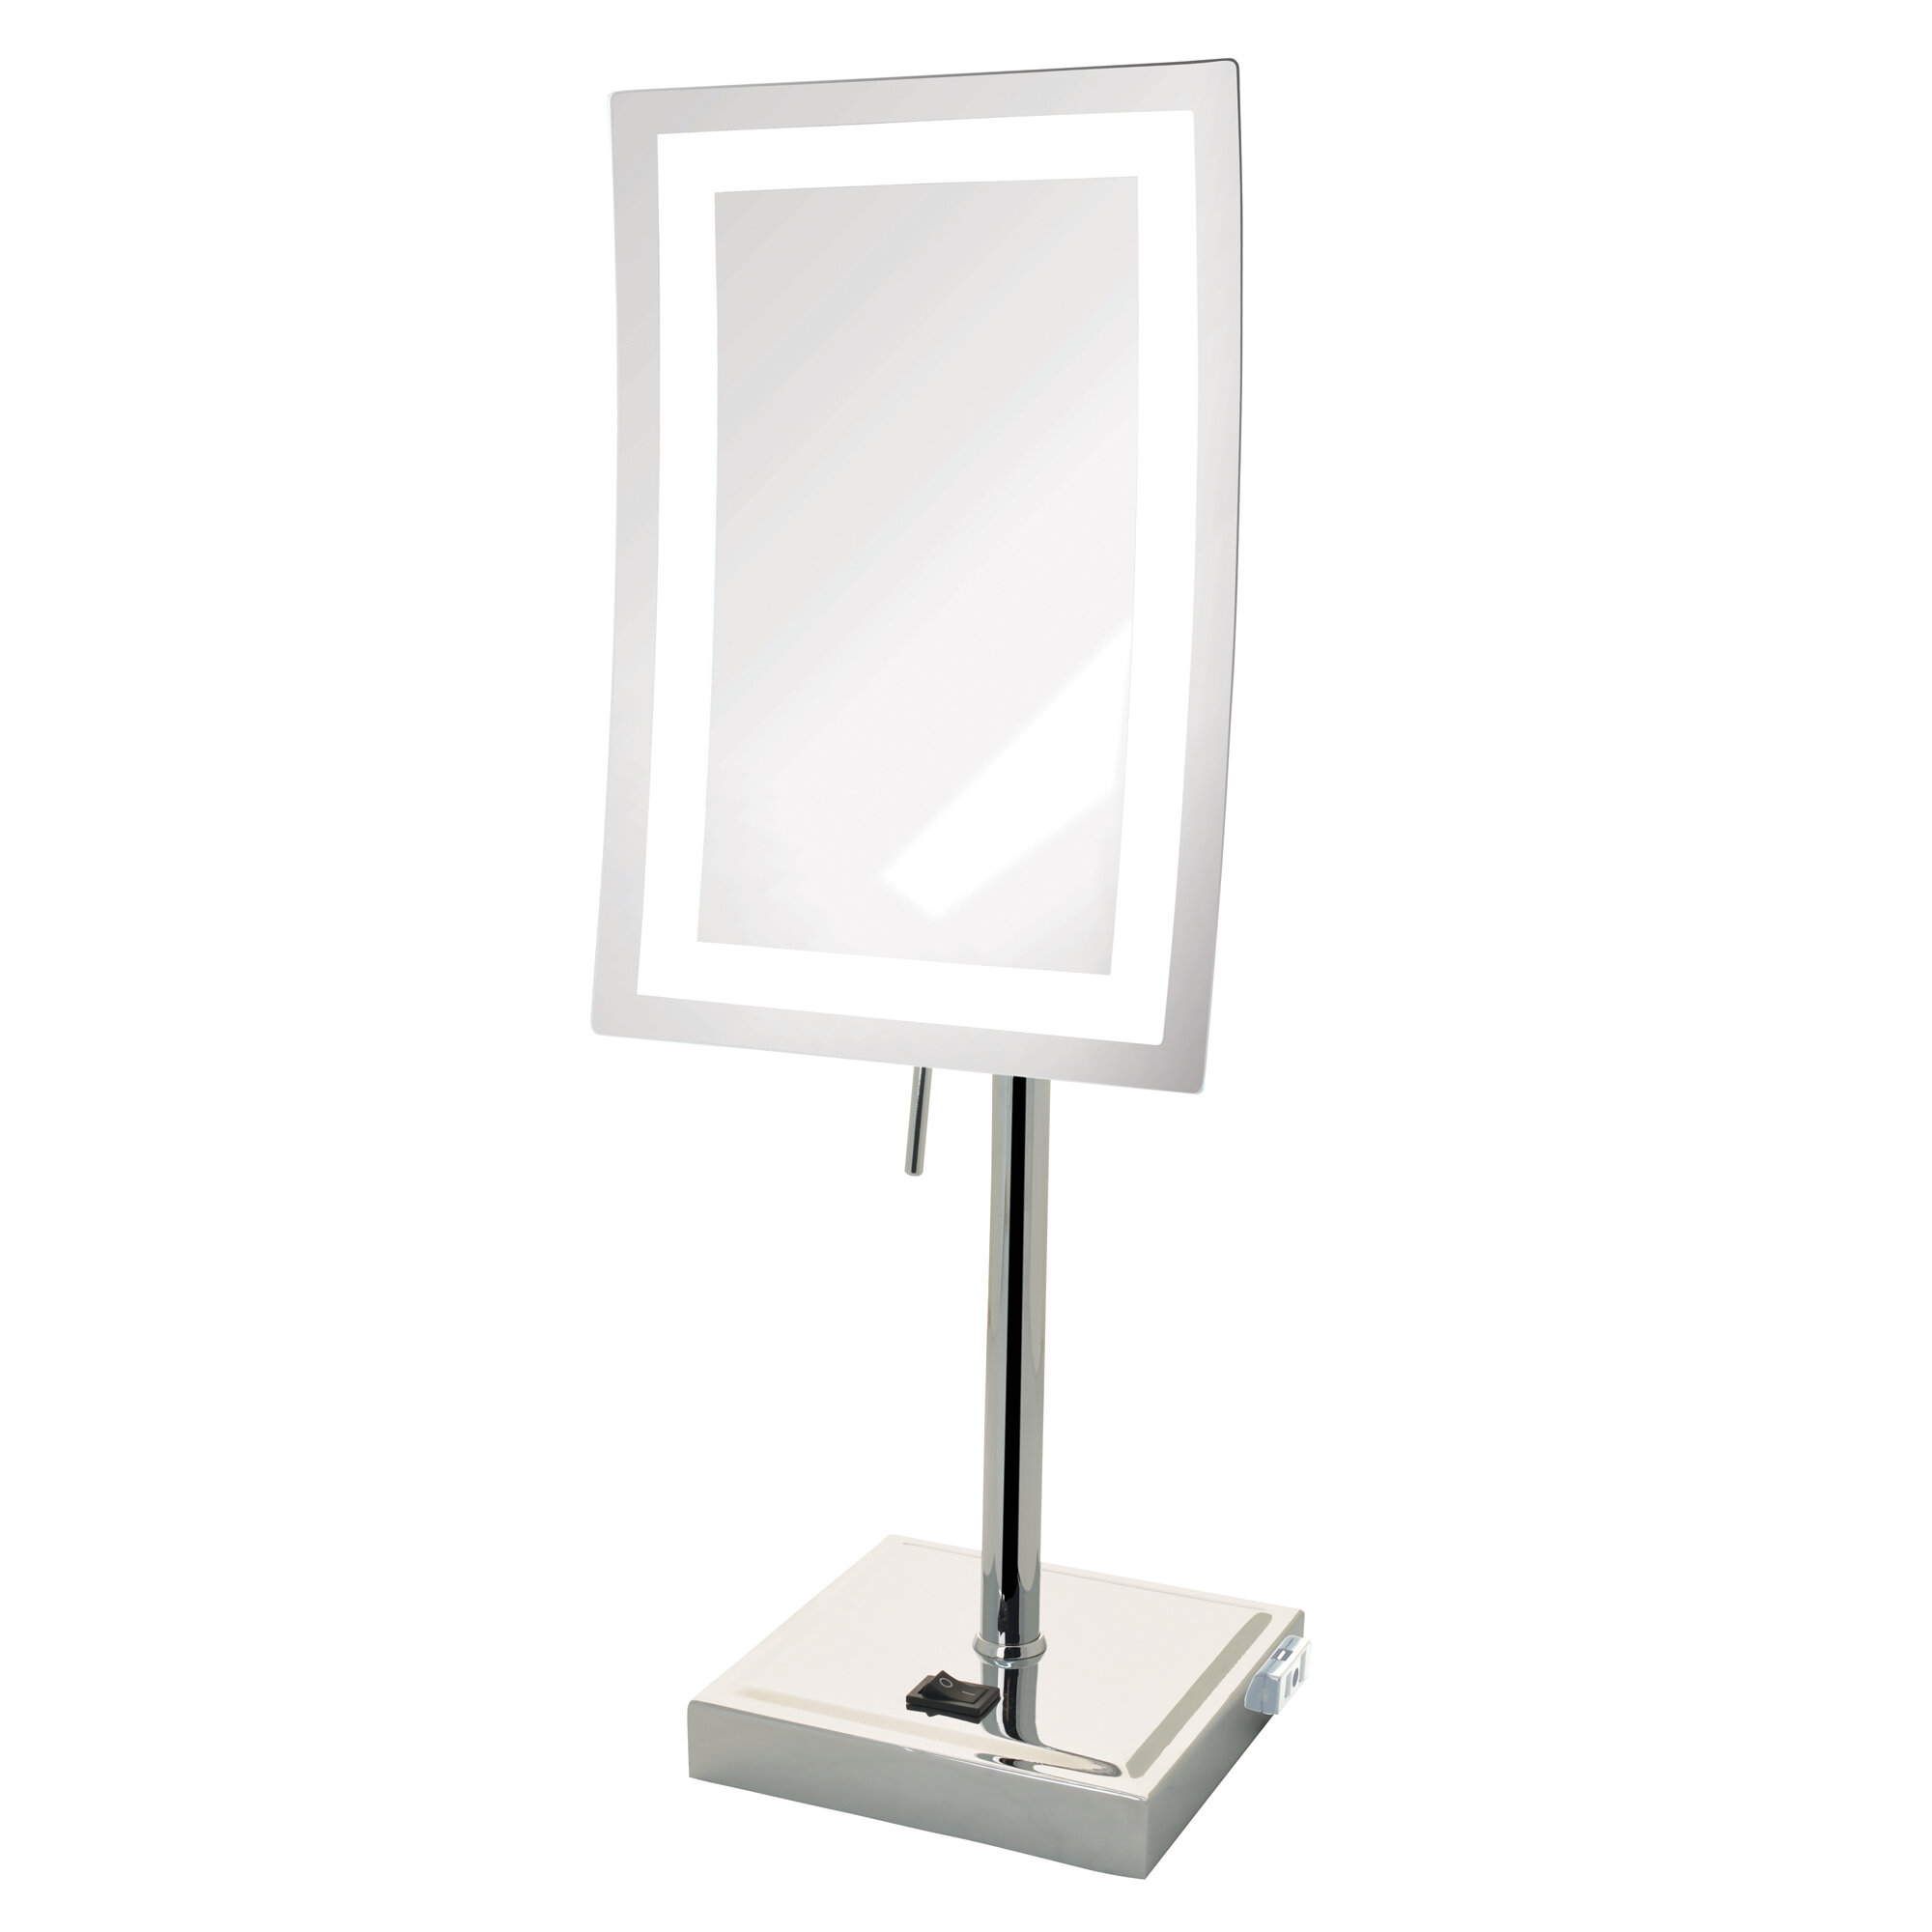 Brayden studio 5x magnified lighted tabletop rectangular mirror brayden studio 5x magnified lighted tabletop rectangular mirror reviews wayfair aloadofball Image collections